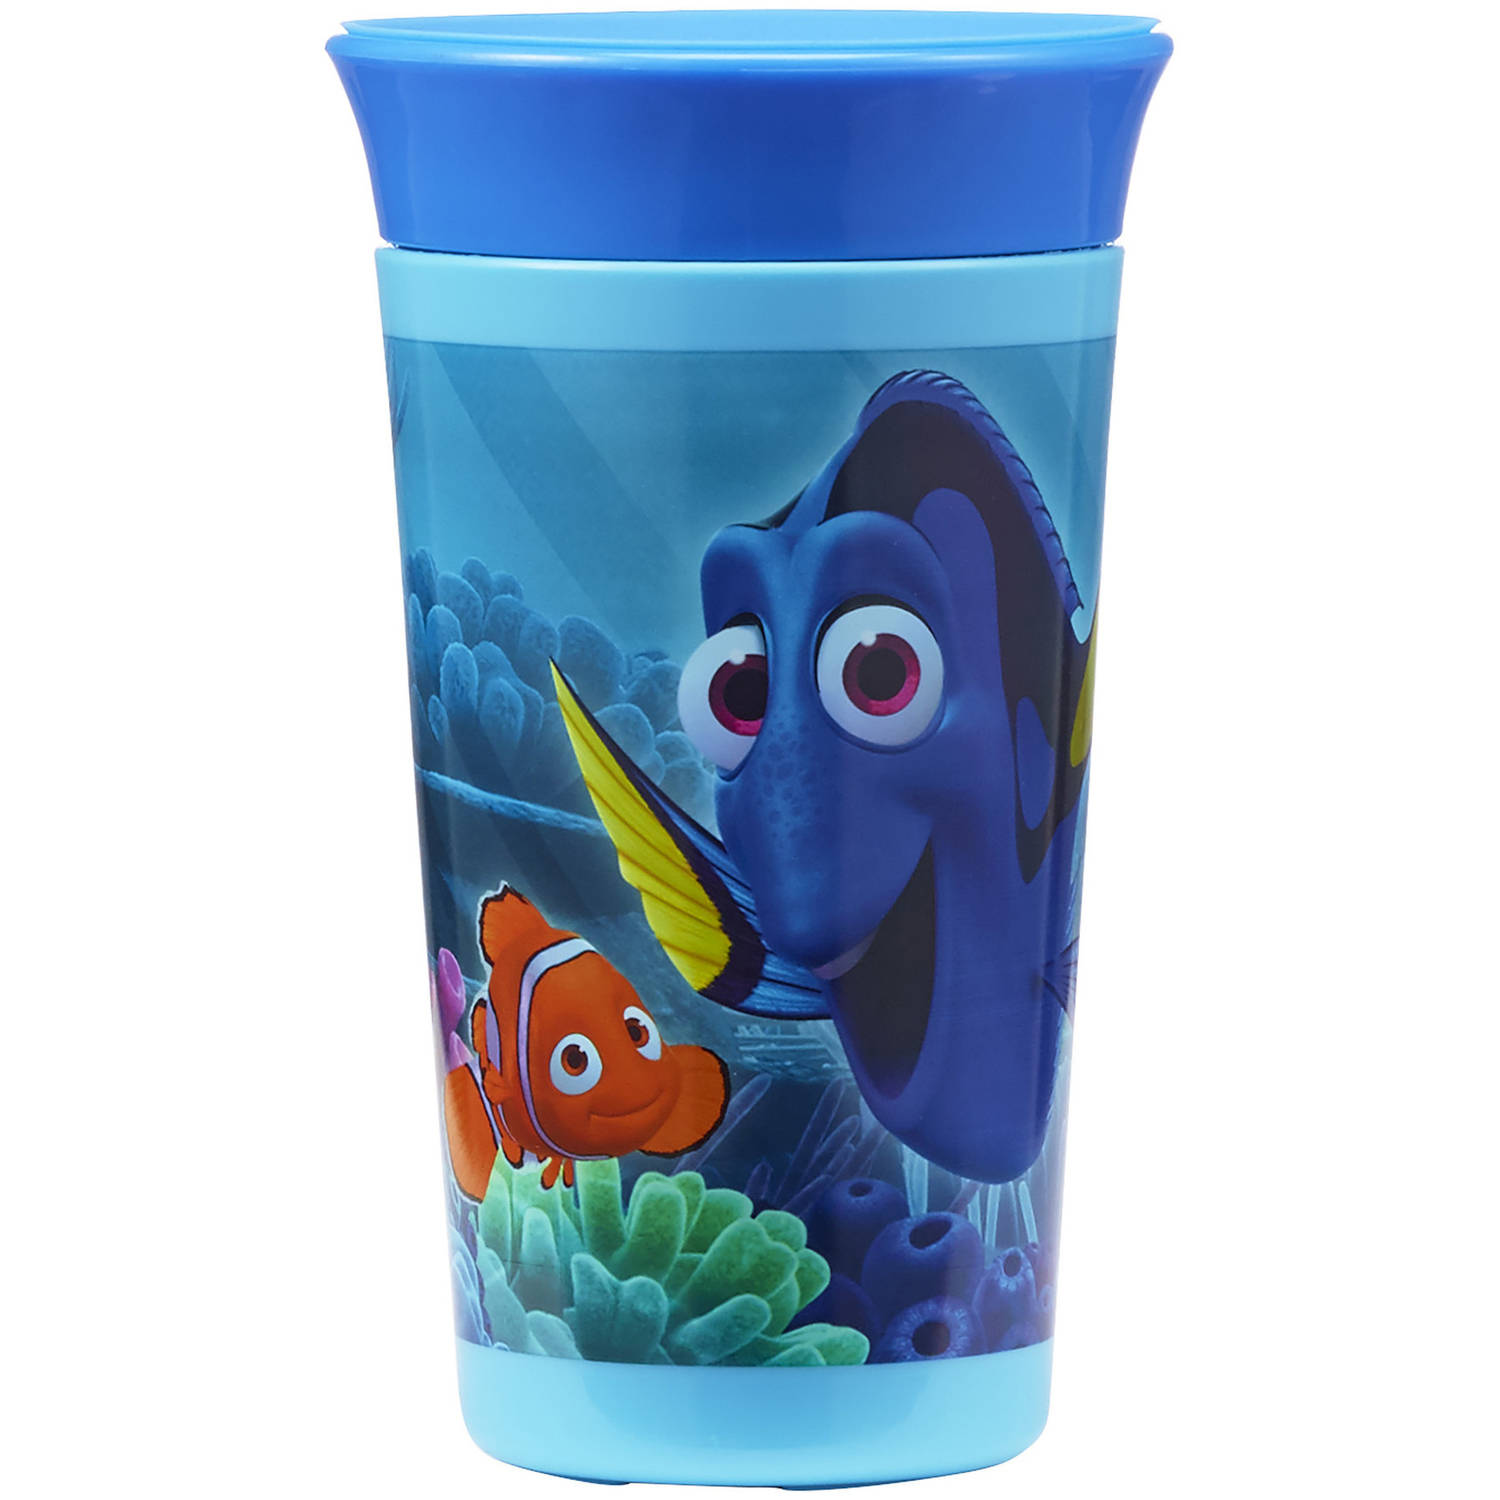 The First Years Disney/Pixar Finding Dory Simply Spoutless Cup, 9 oz